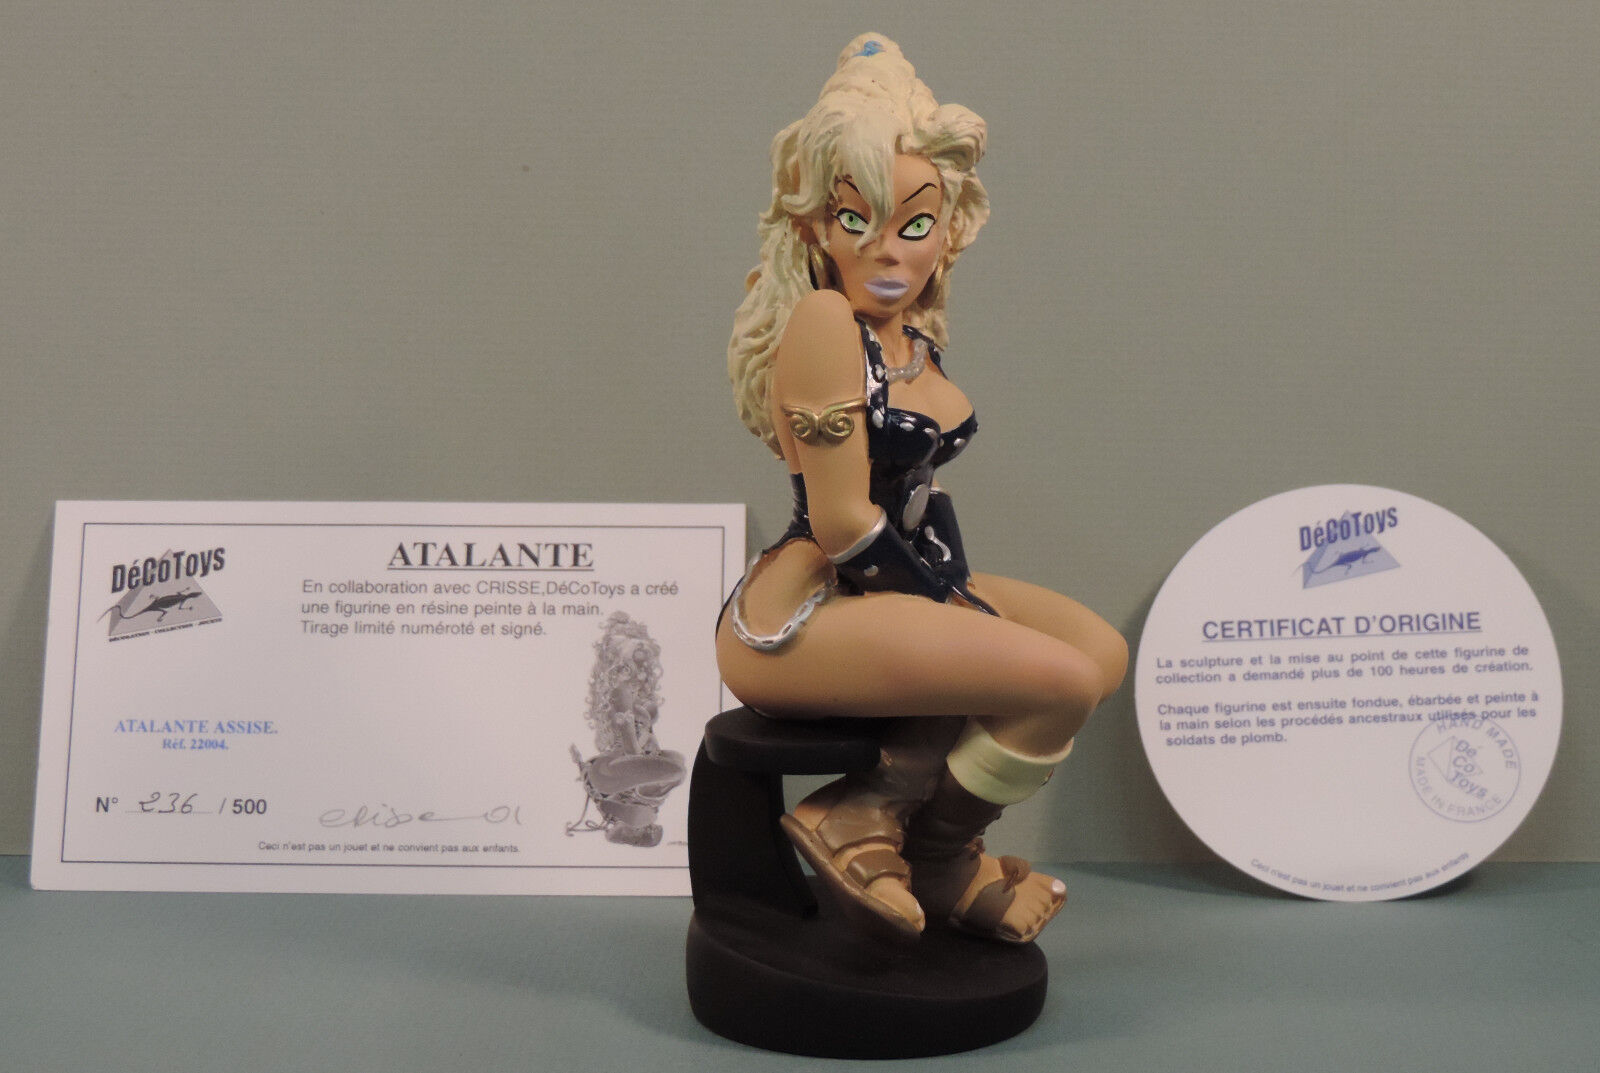 Atalante assise statue resine Decotoys 22004 numerede signe